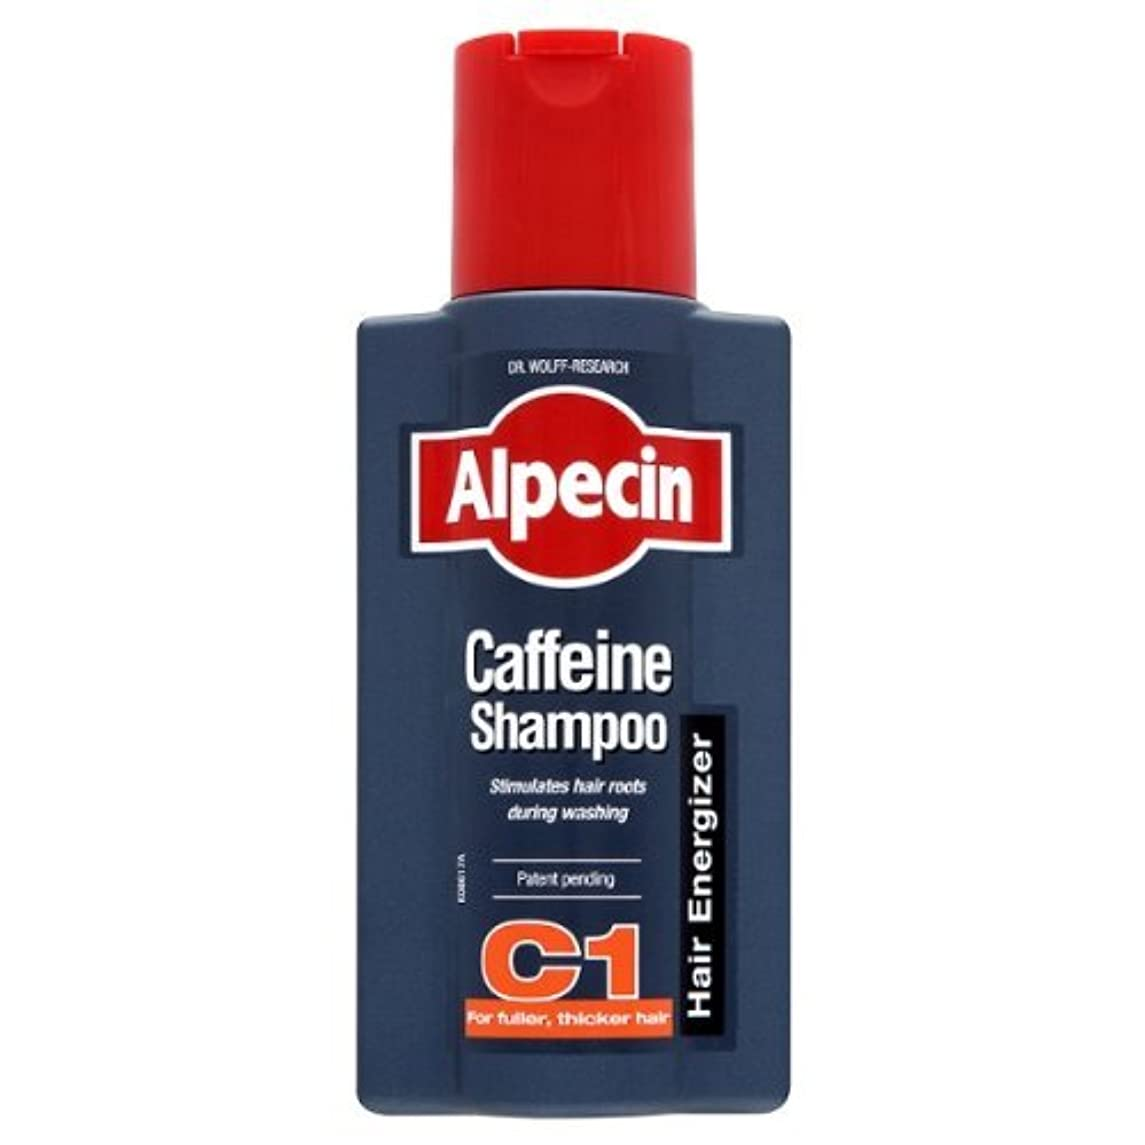 出席太字キャプチャーAlpecin Caffeine Hair Energizer Shampoo 250ml - Pack of 3 by ALPECIN [並行輸入品]